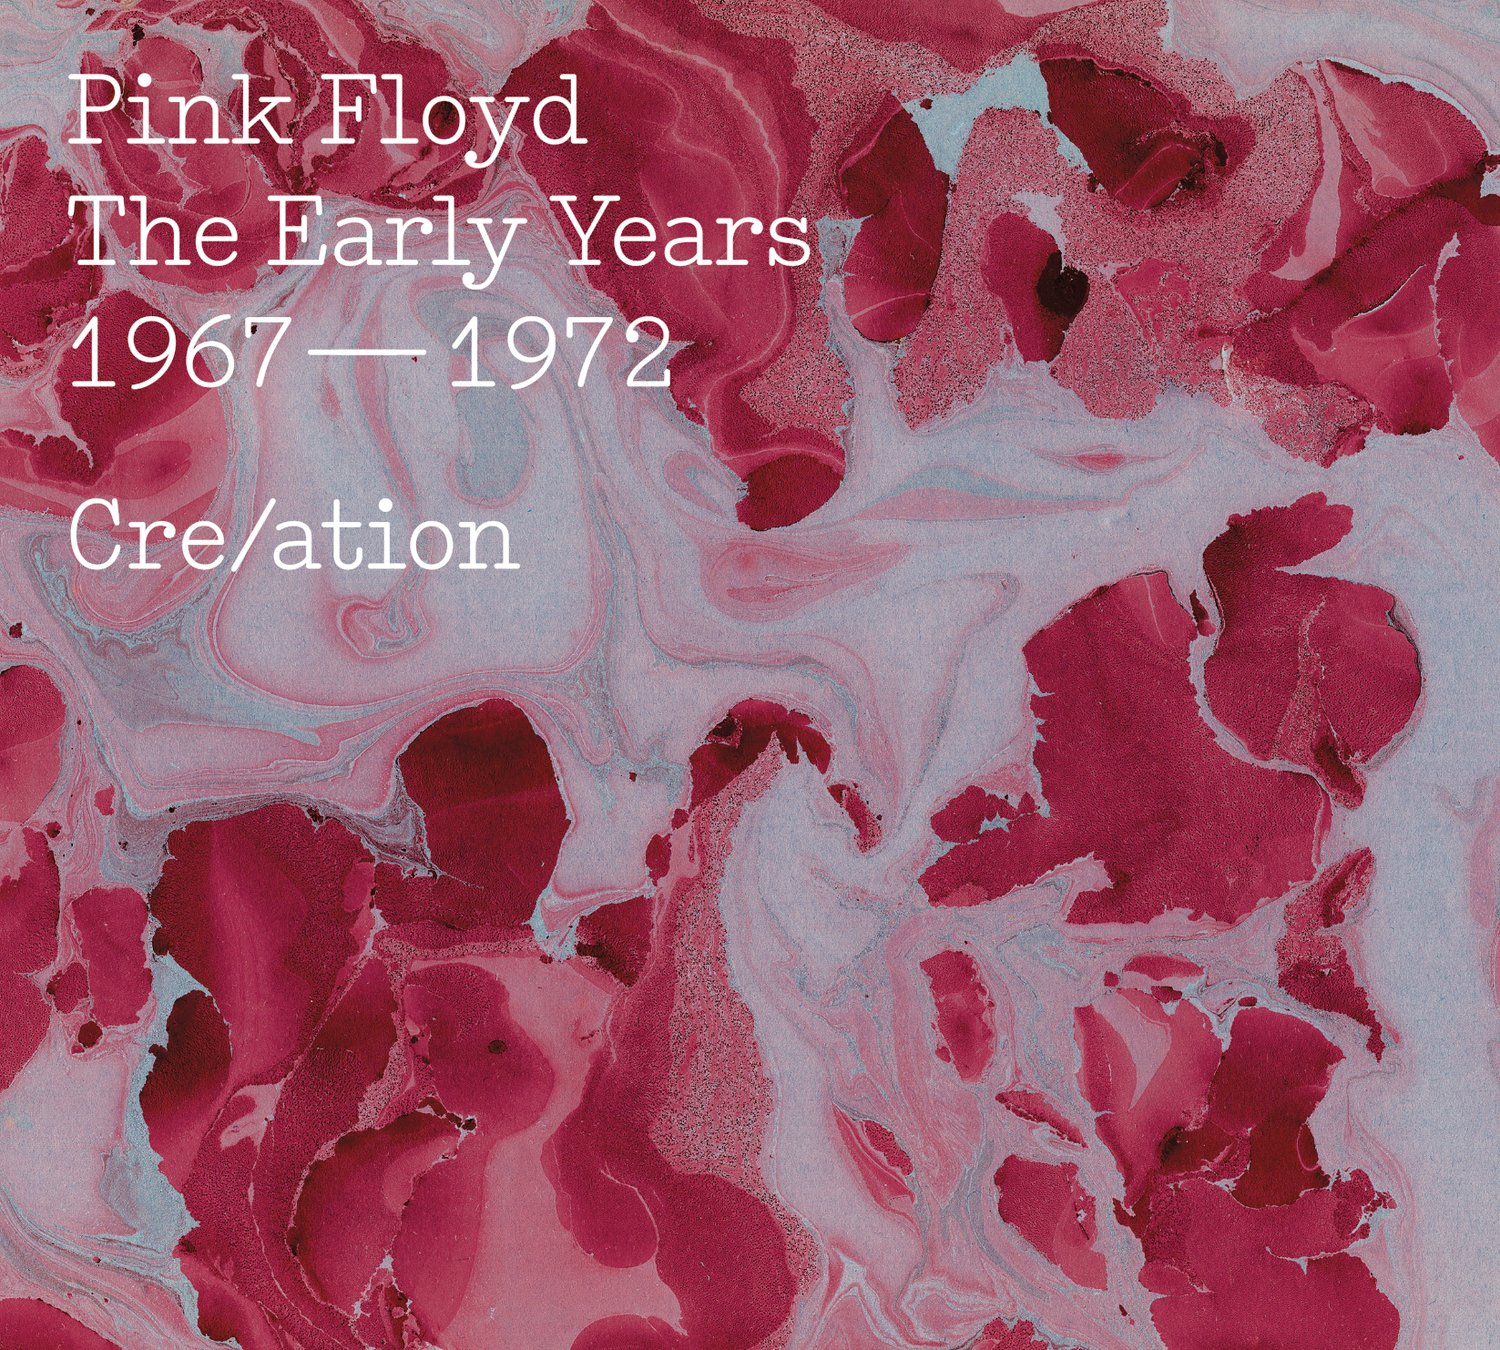 Pink Floyd - Creation The Early Years - Remastered - 2CD - FLAC - 2016 - PERFECT Download